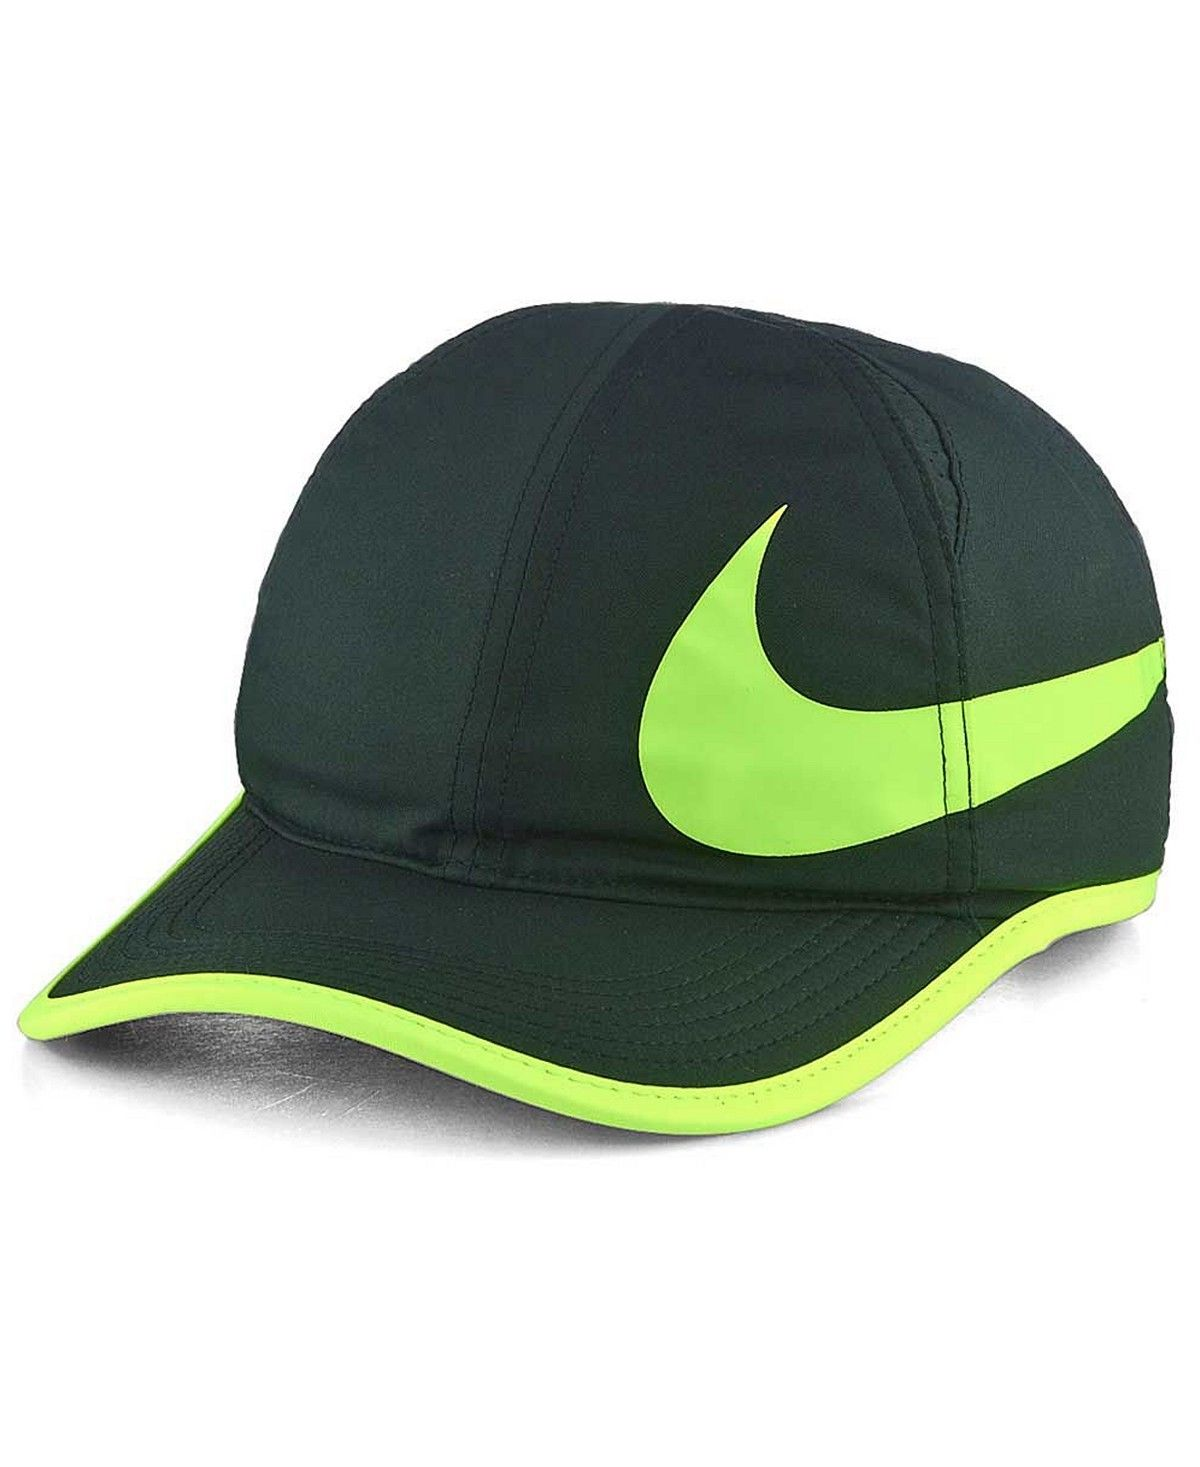 ee6b05191f8 NIKE Featherlight Swoosh Cap Hat Black Green Great Gift NEW NWT ...